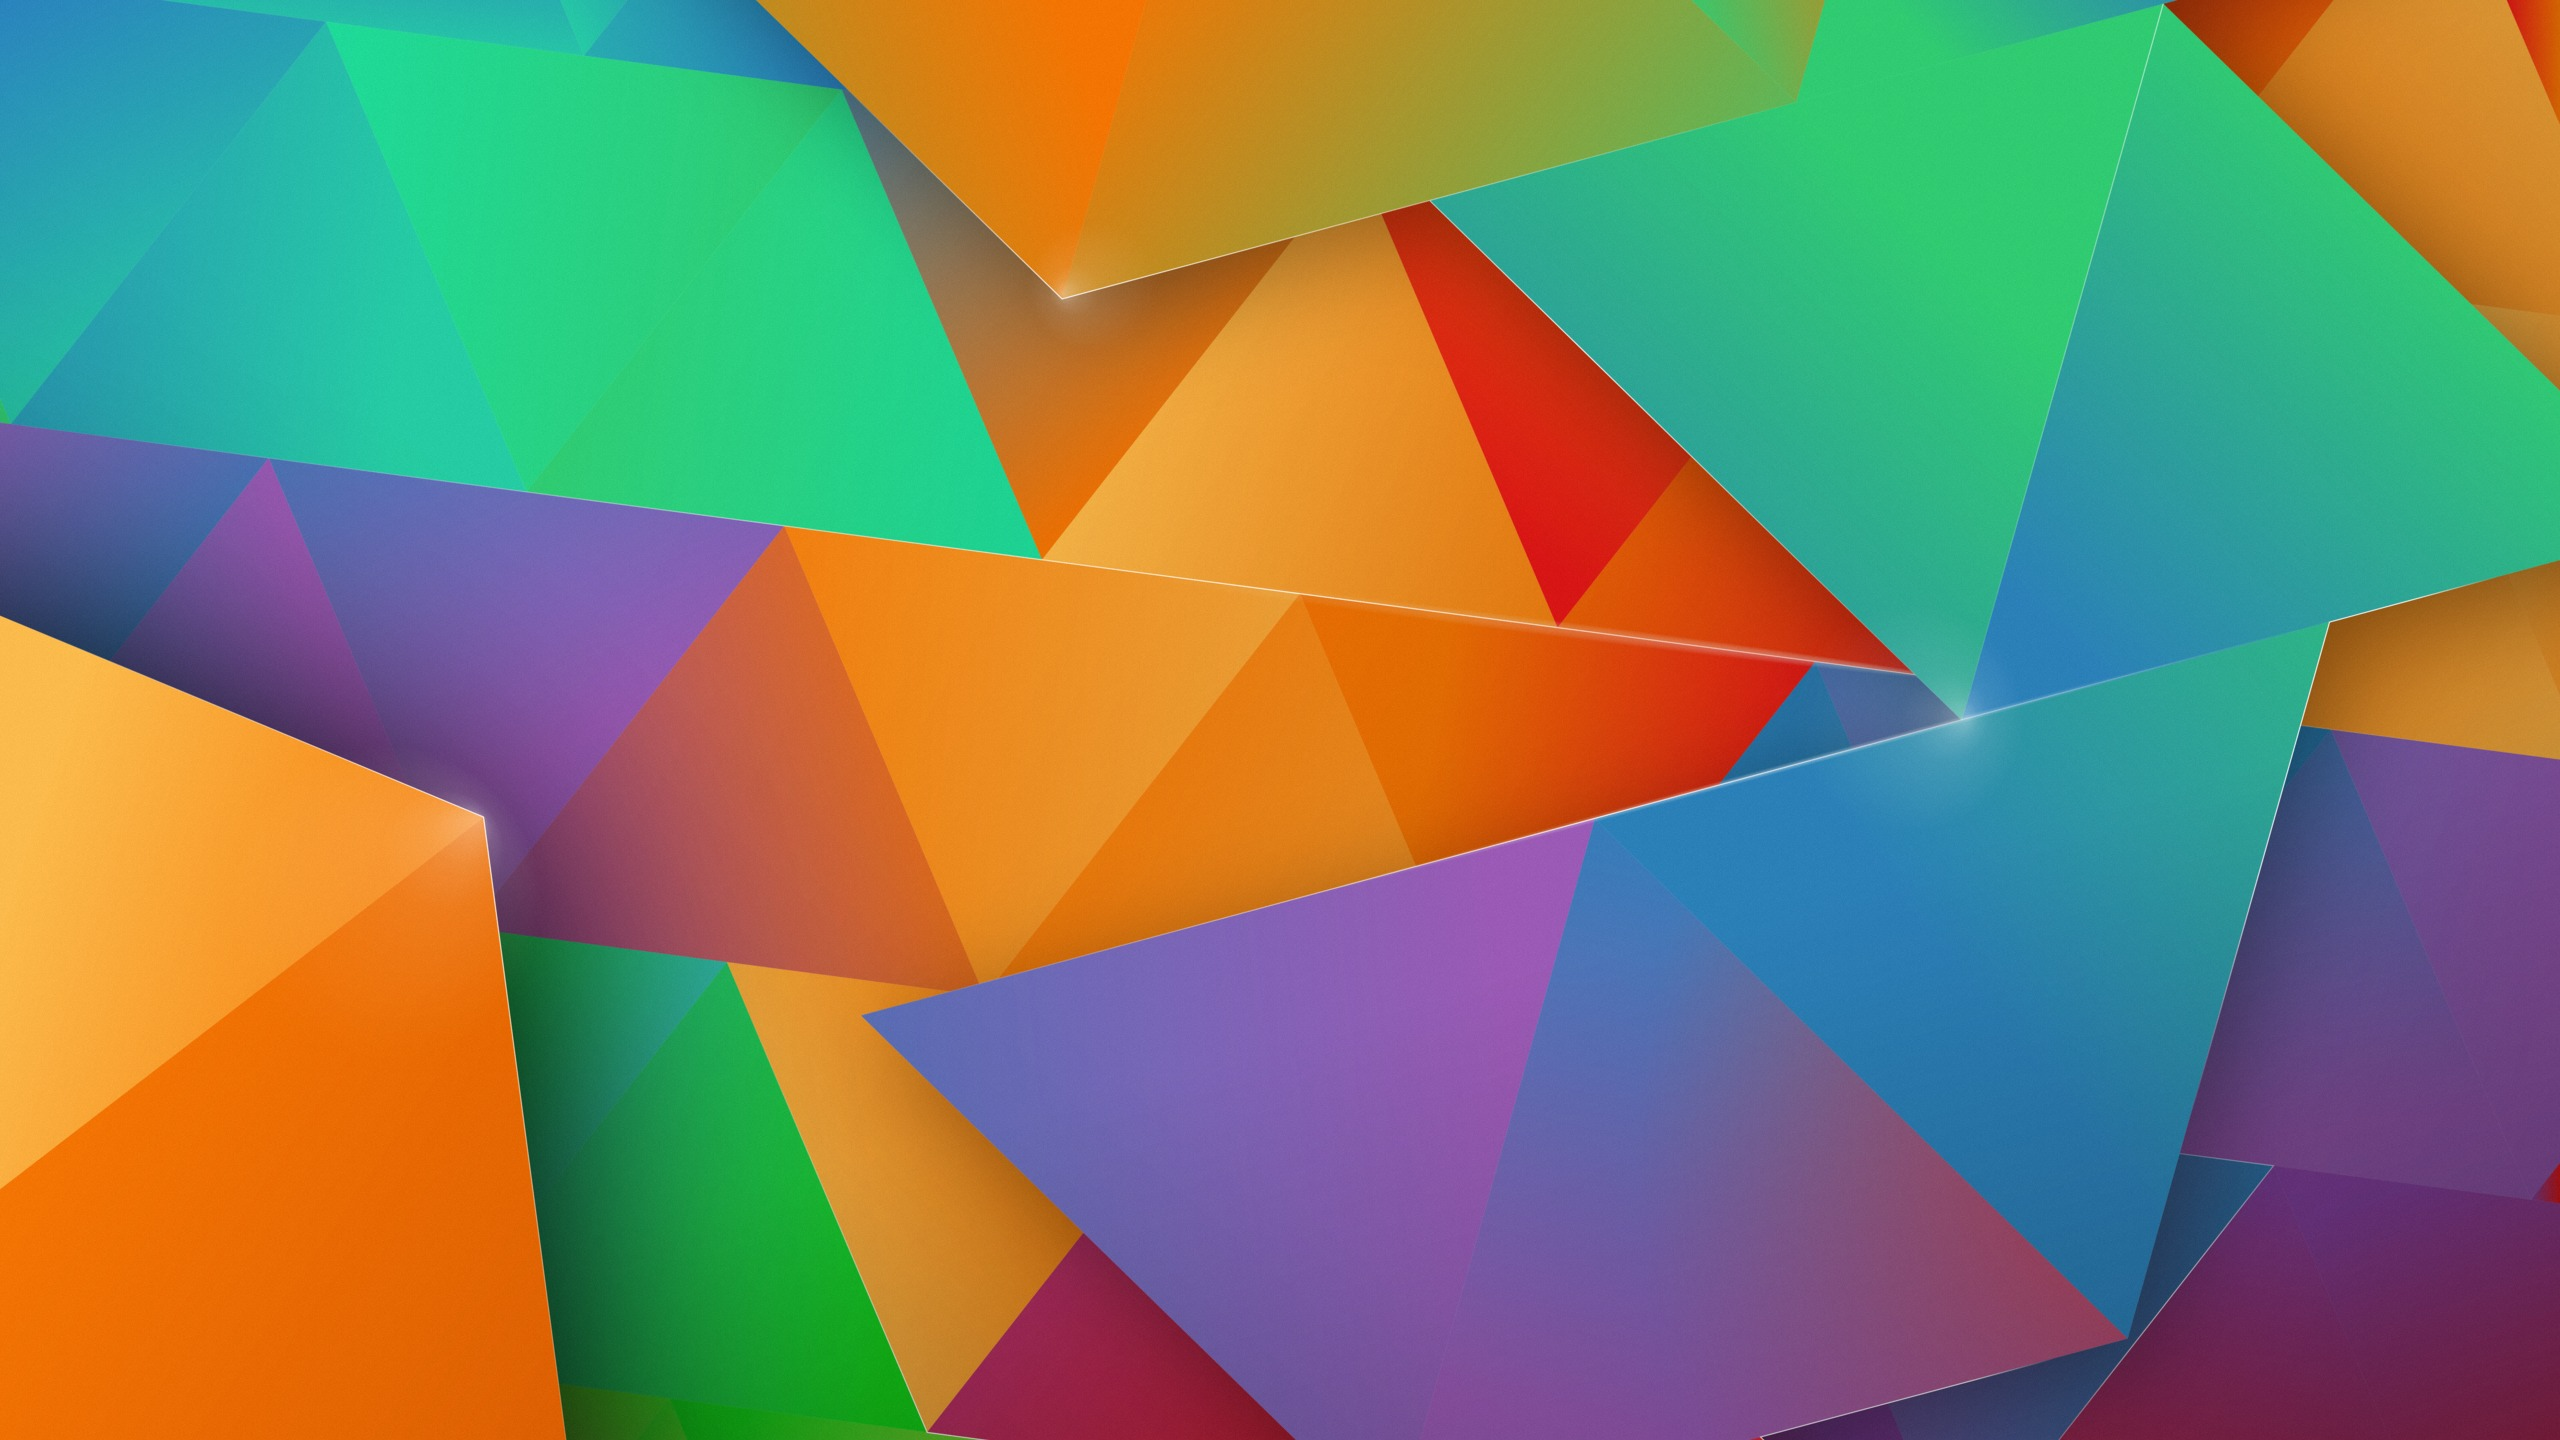 Colorful 3d Abstract Wallpapers Nuevo Fondo De Pantalla Para Plasma 5 9 Kde Blog